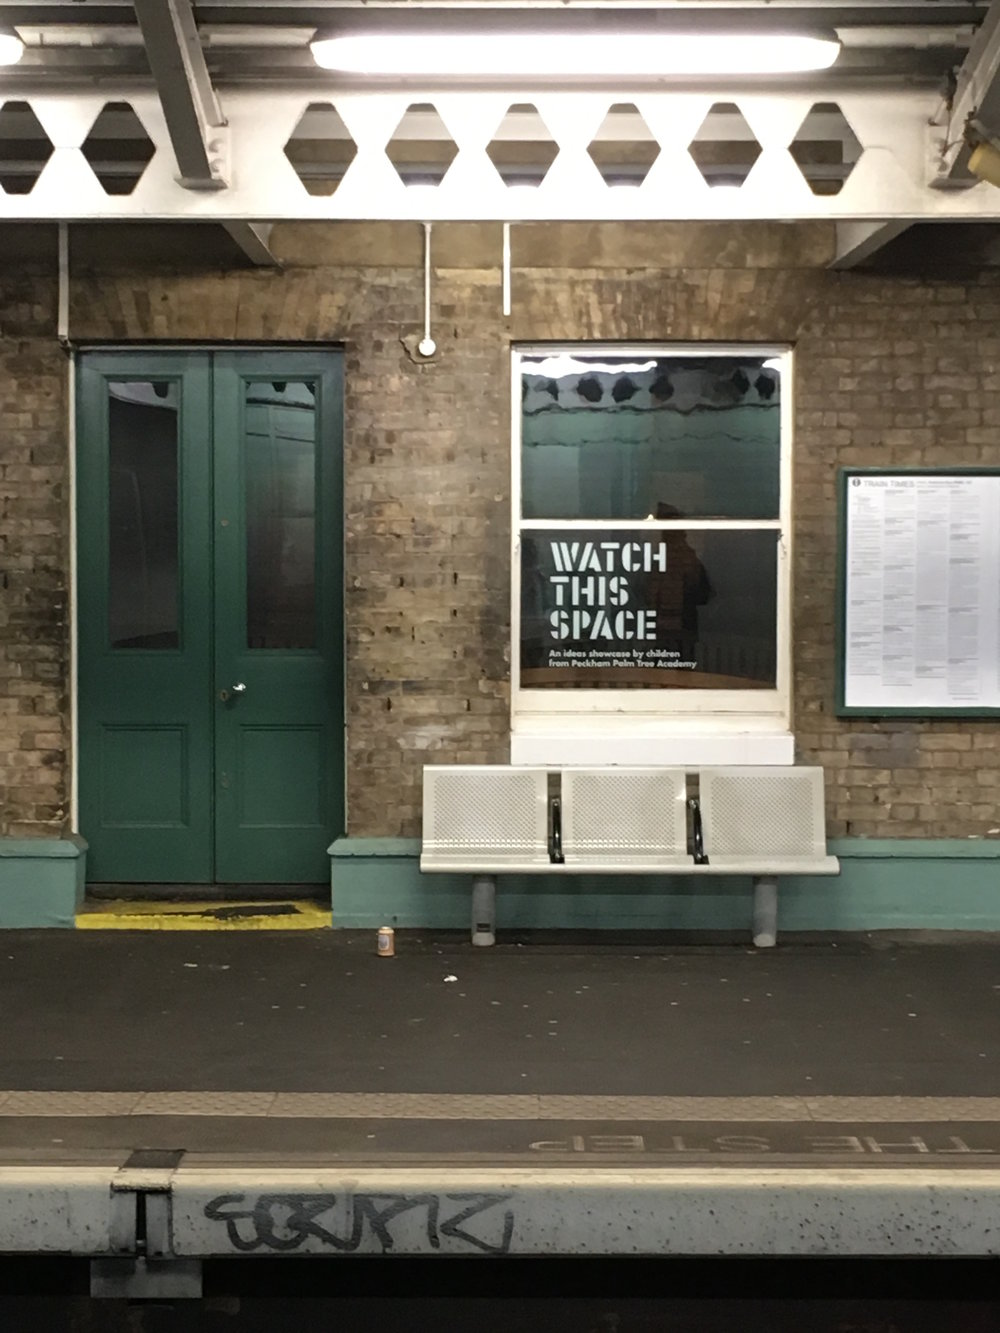 www.livingspaceproject.com:shared spaces:watch this space.jpg